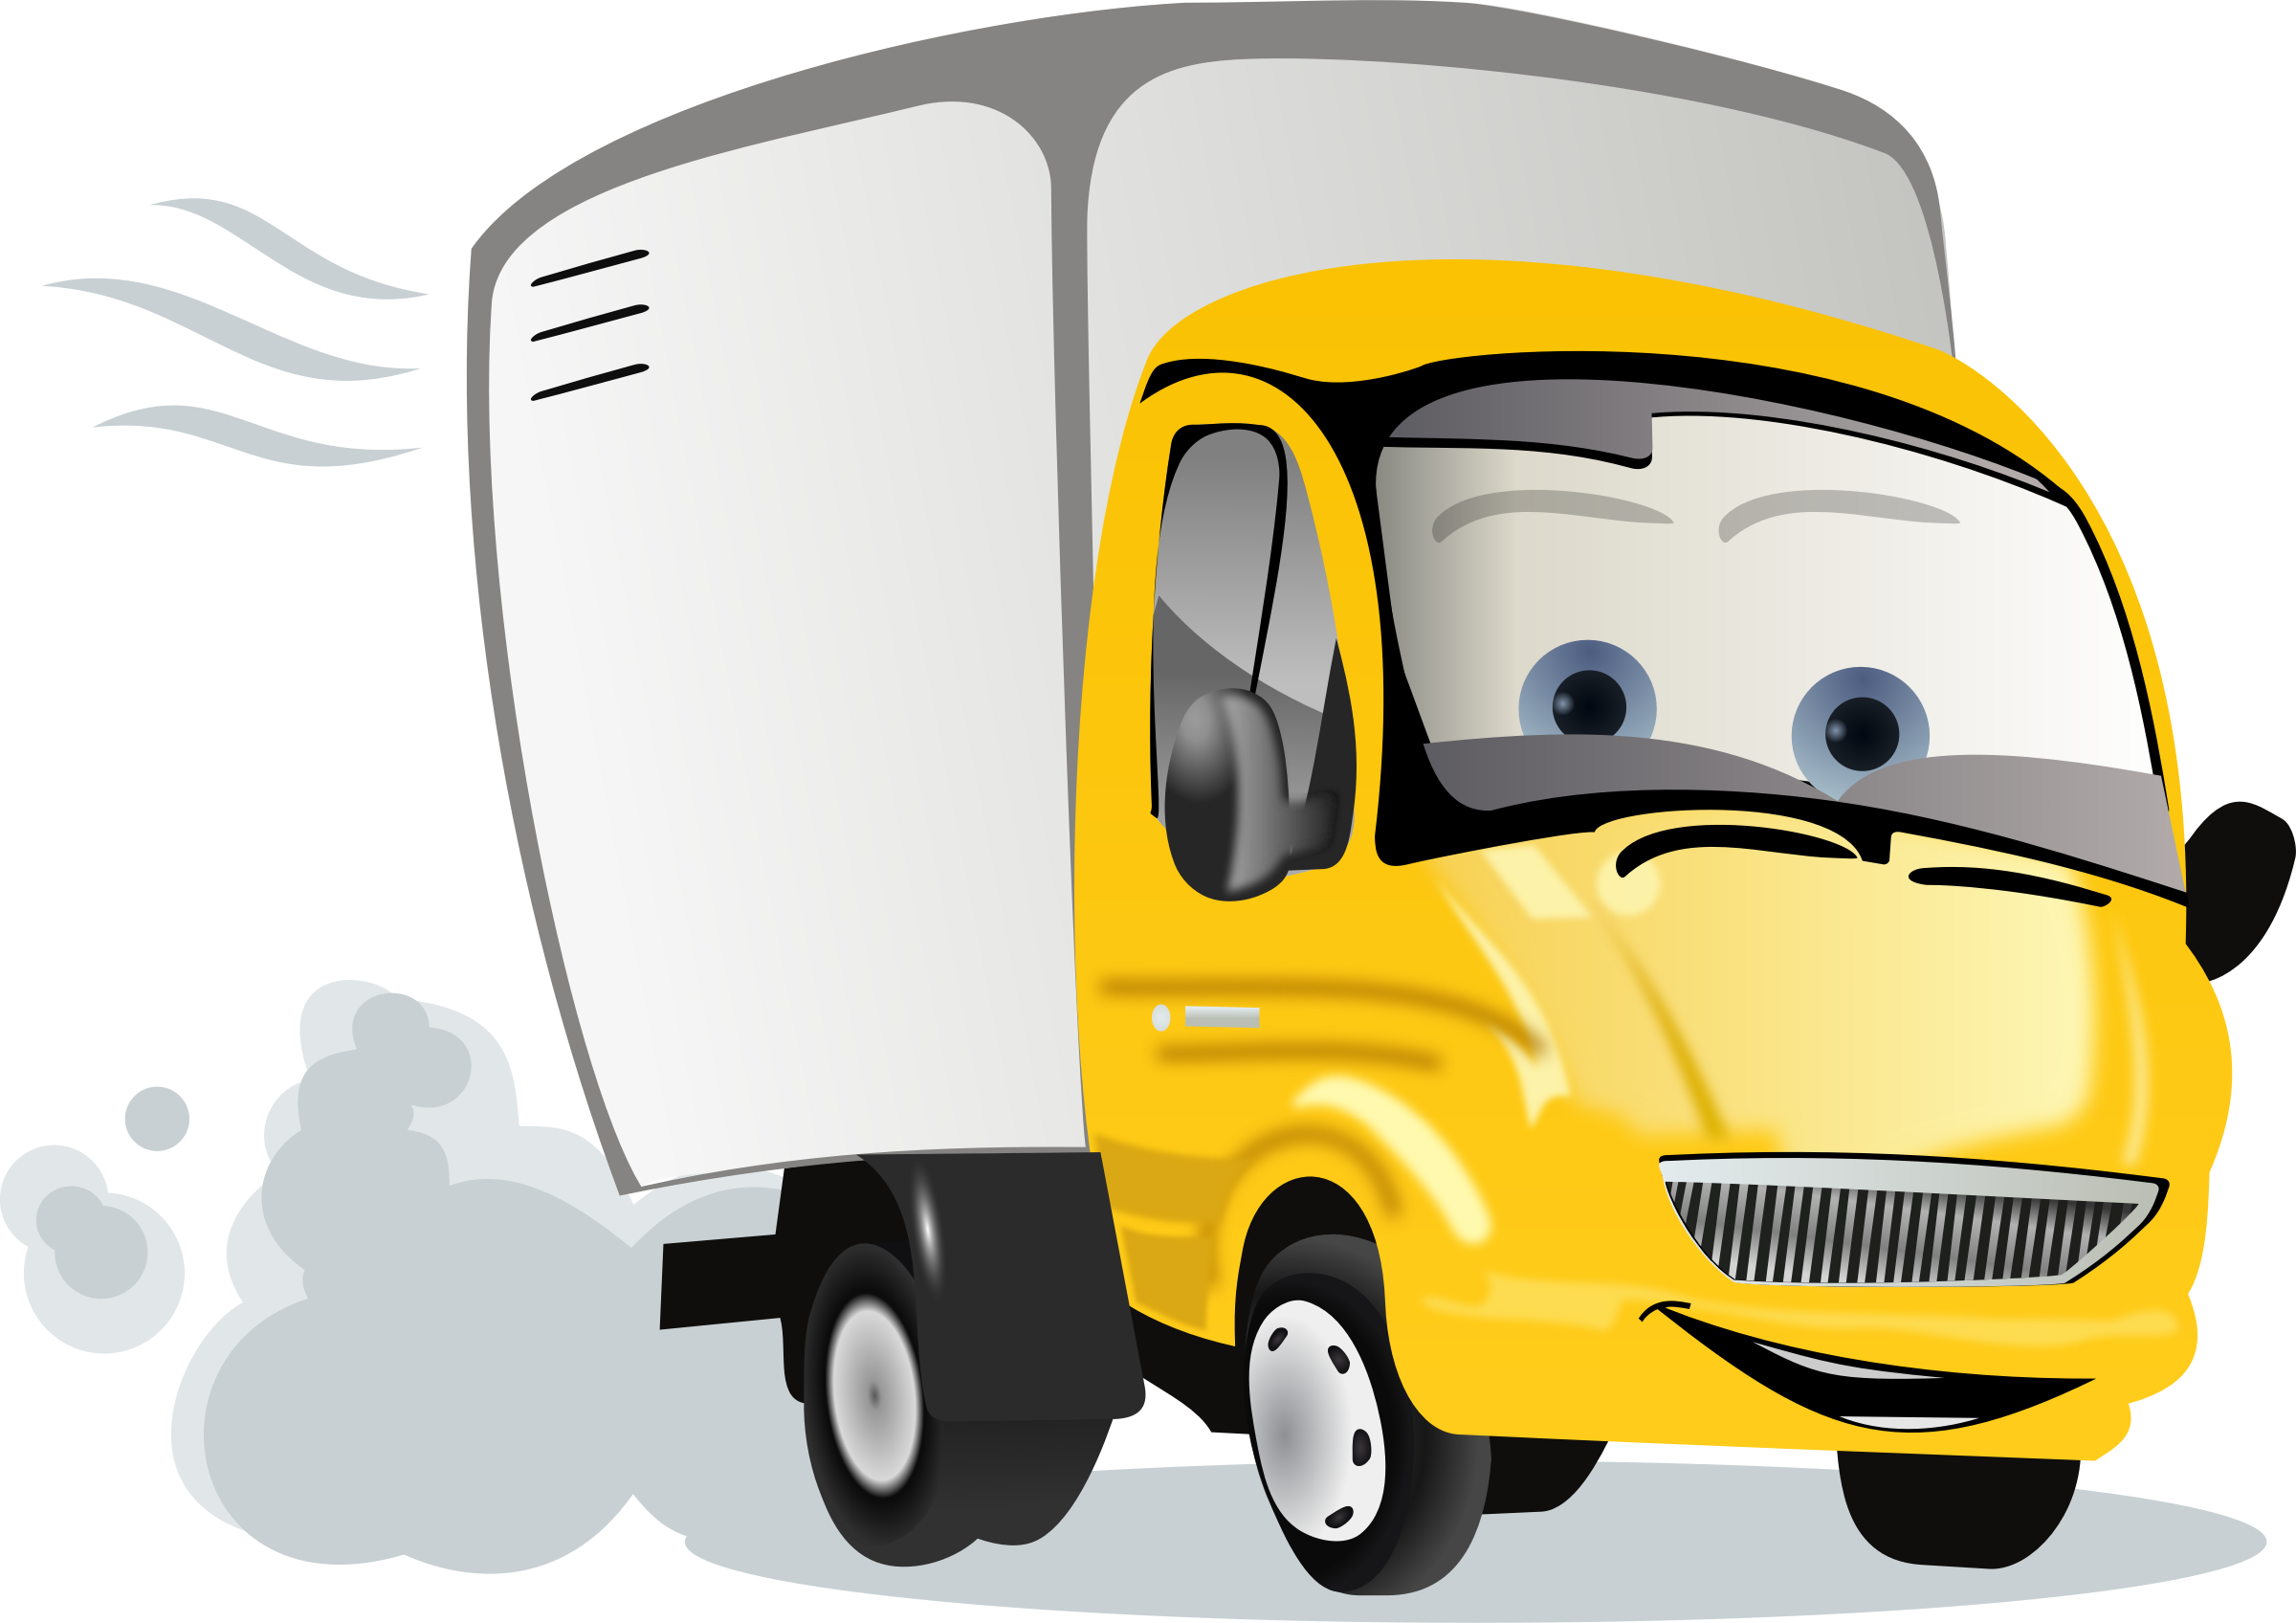 Truck clipart animated. Cartoon trucks image group